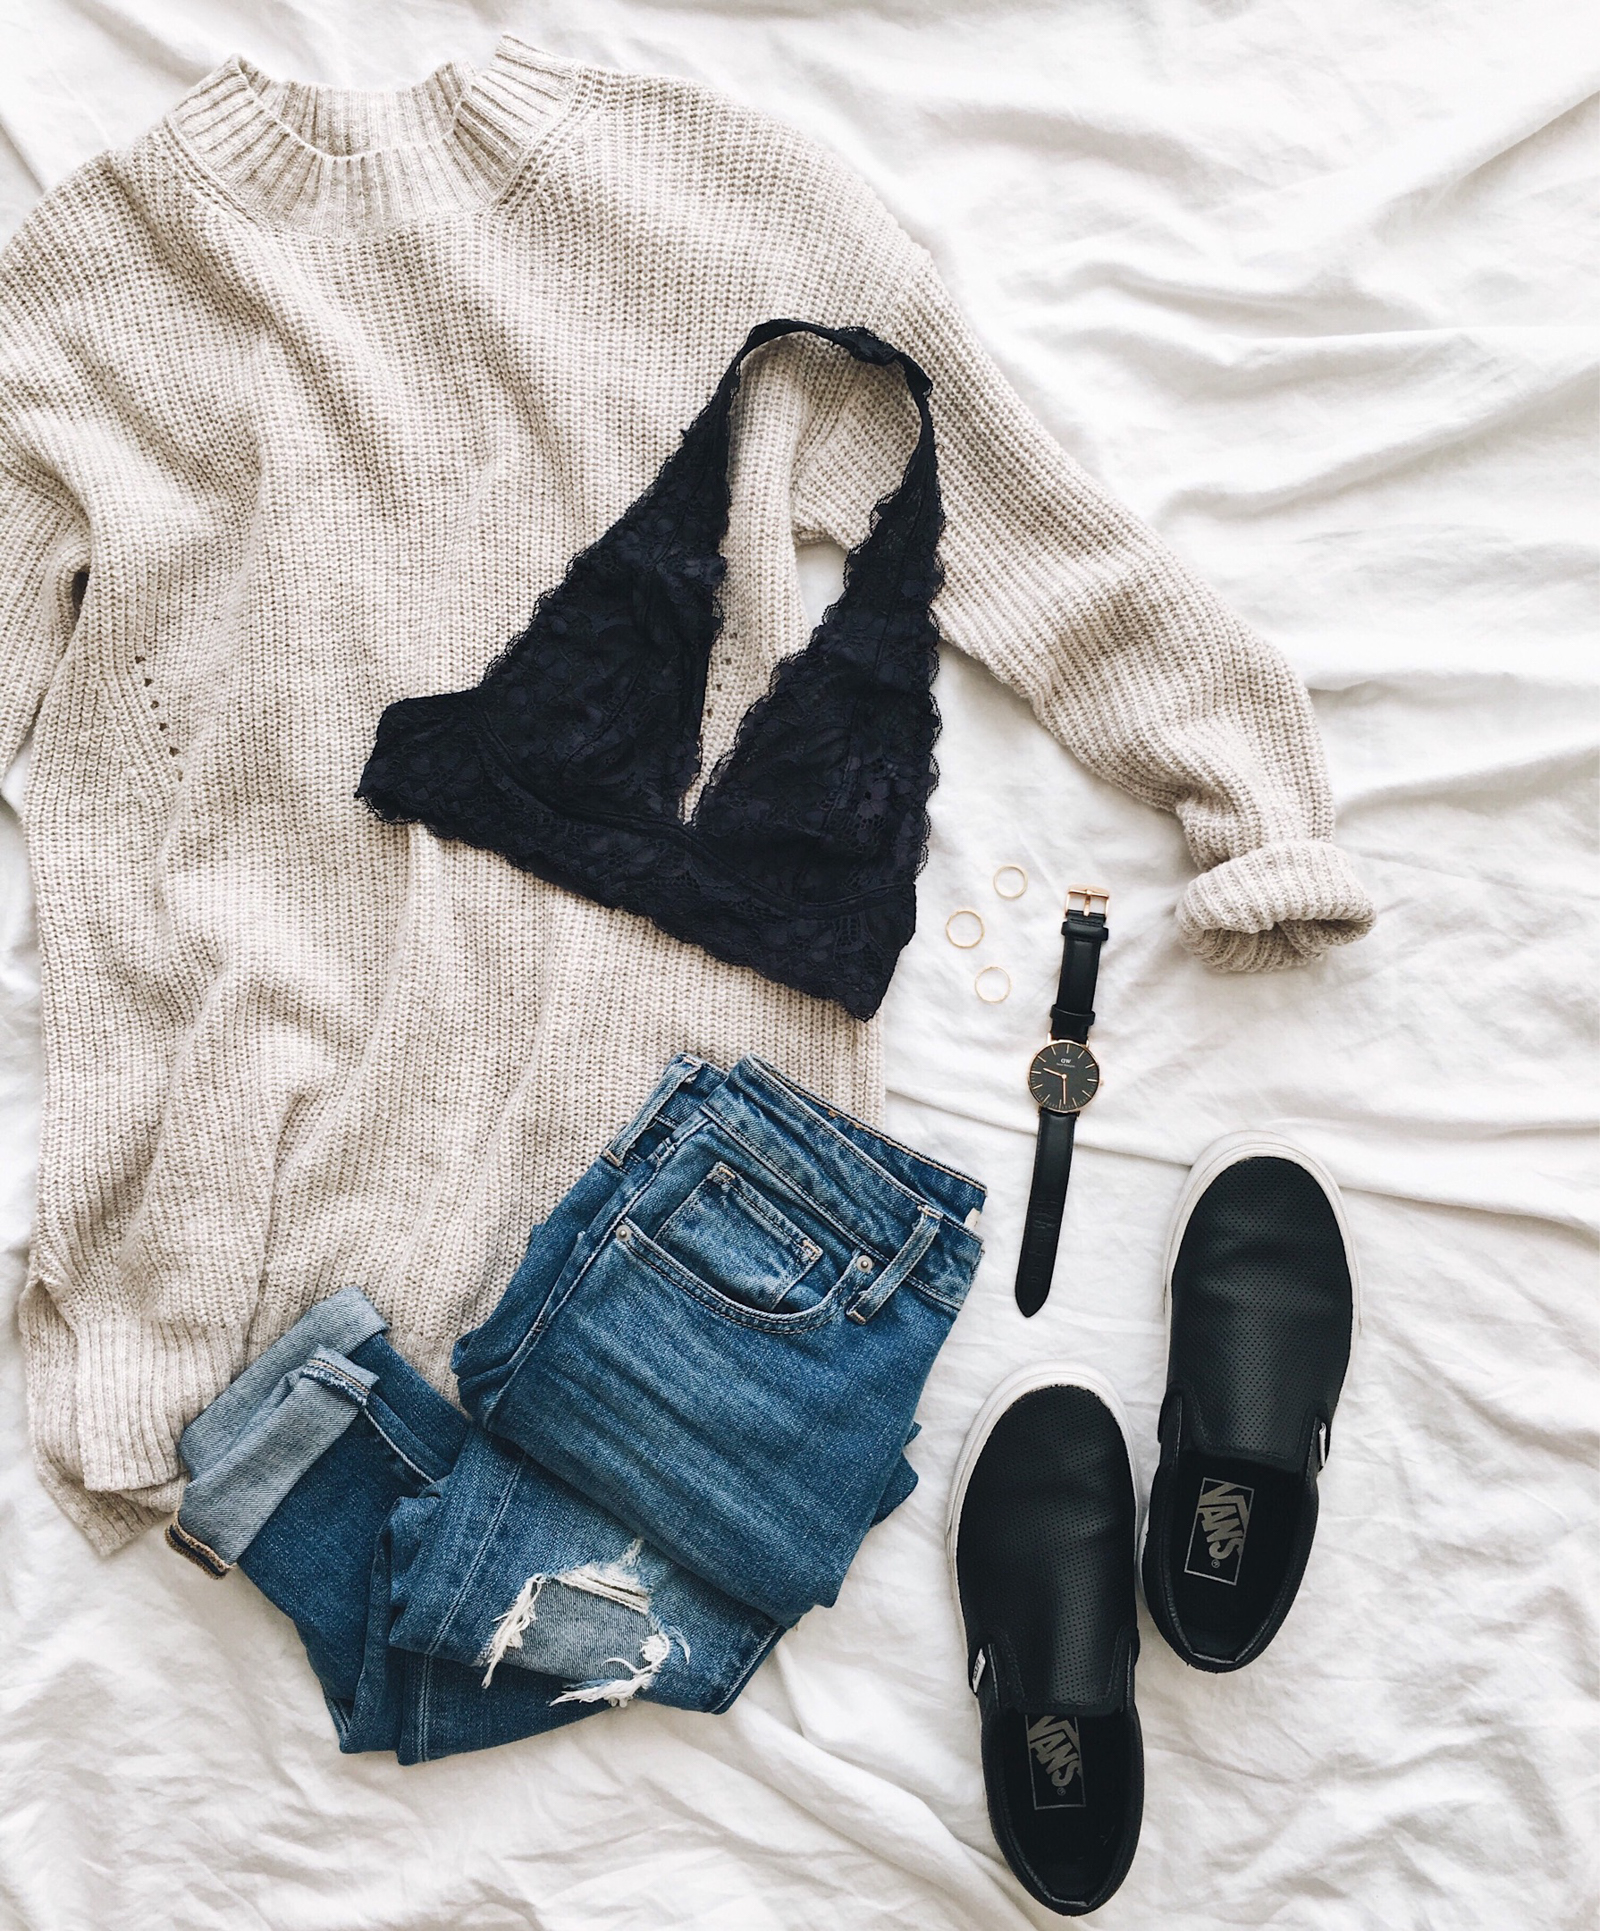 livvyland-blog-olivia-watson-instagram-roundup-austin-texas-cozy-winter-outfit-bra-top-sweater